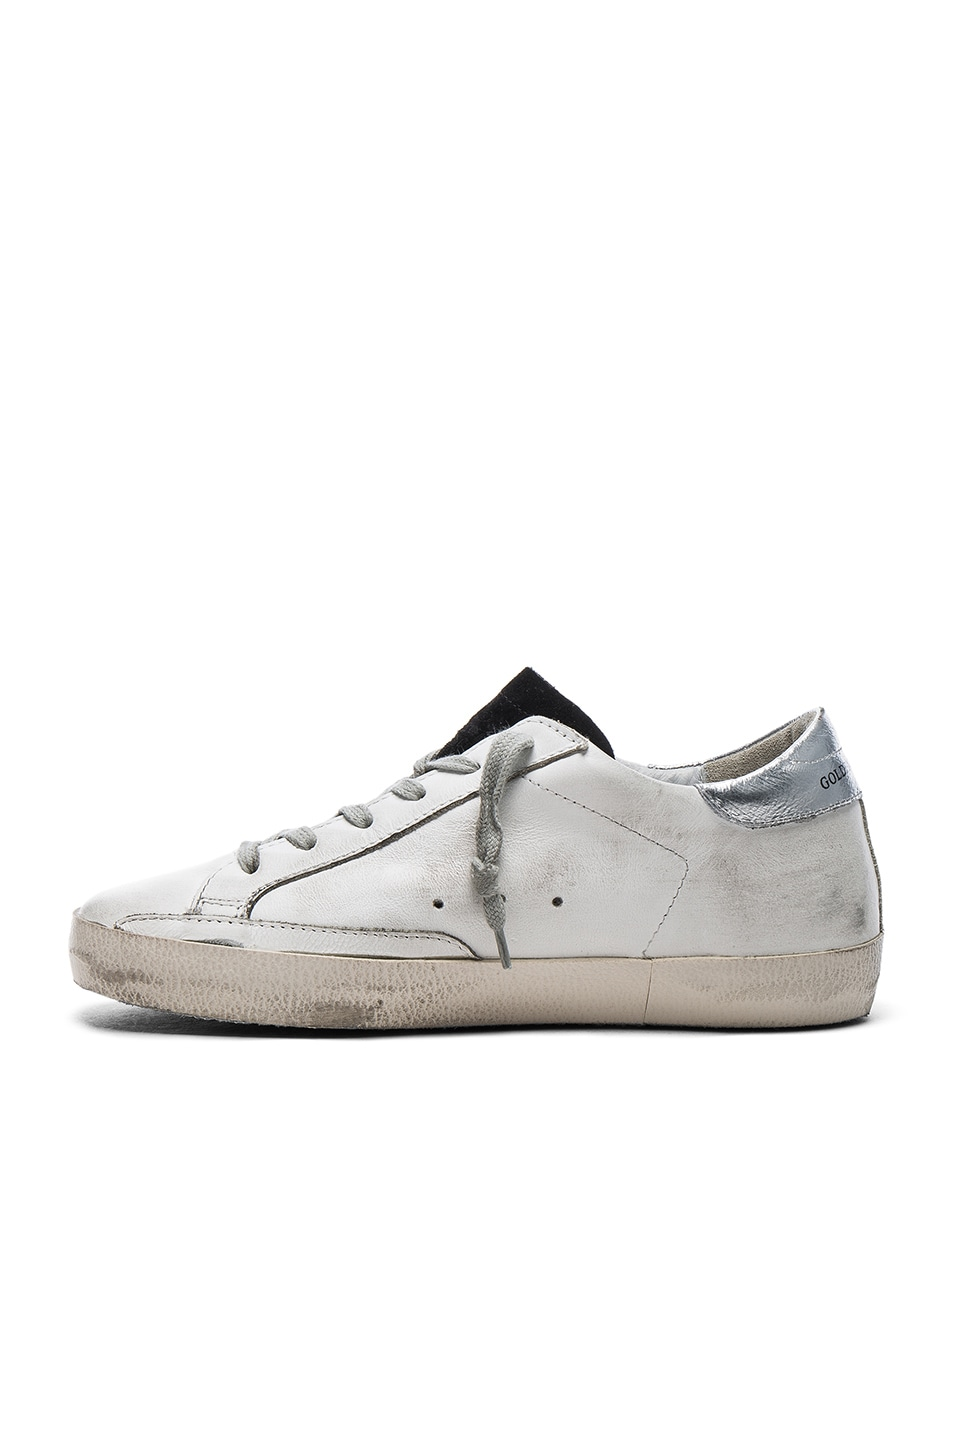 Image 5 of Golden Goose Leather Superstar Low Sneakers in White & Petroleum